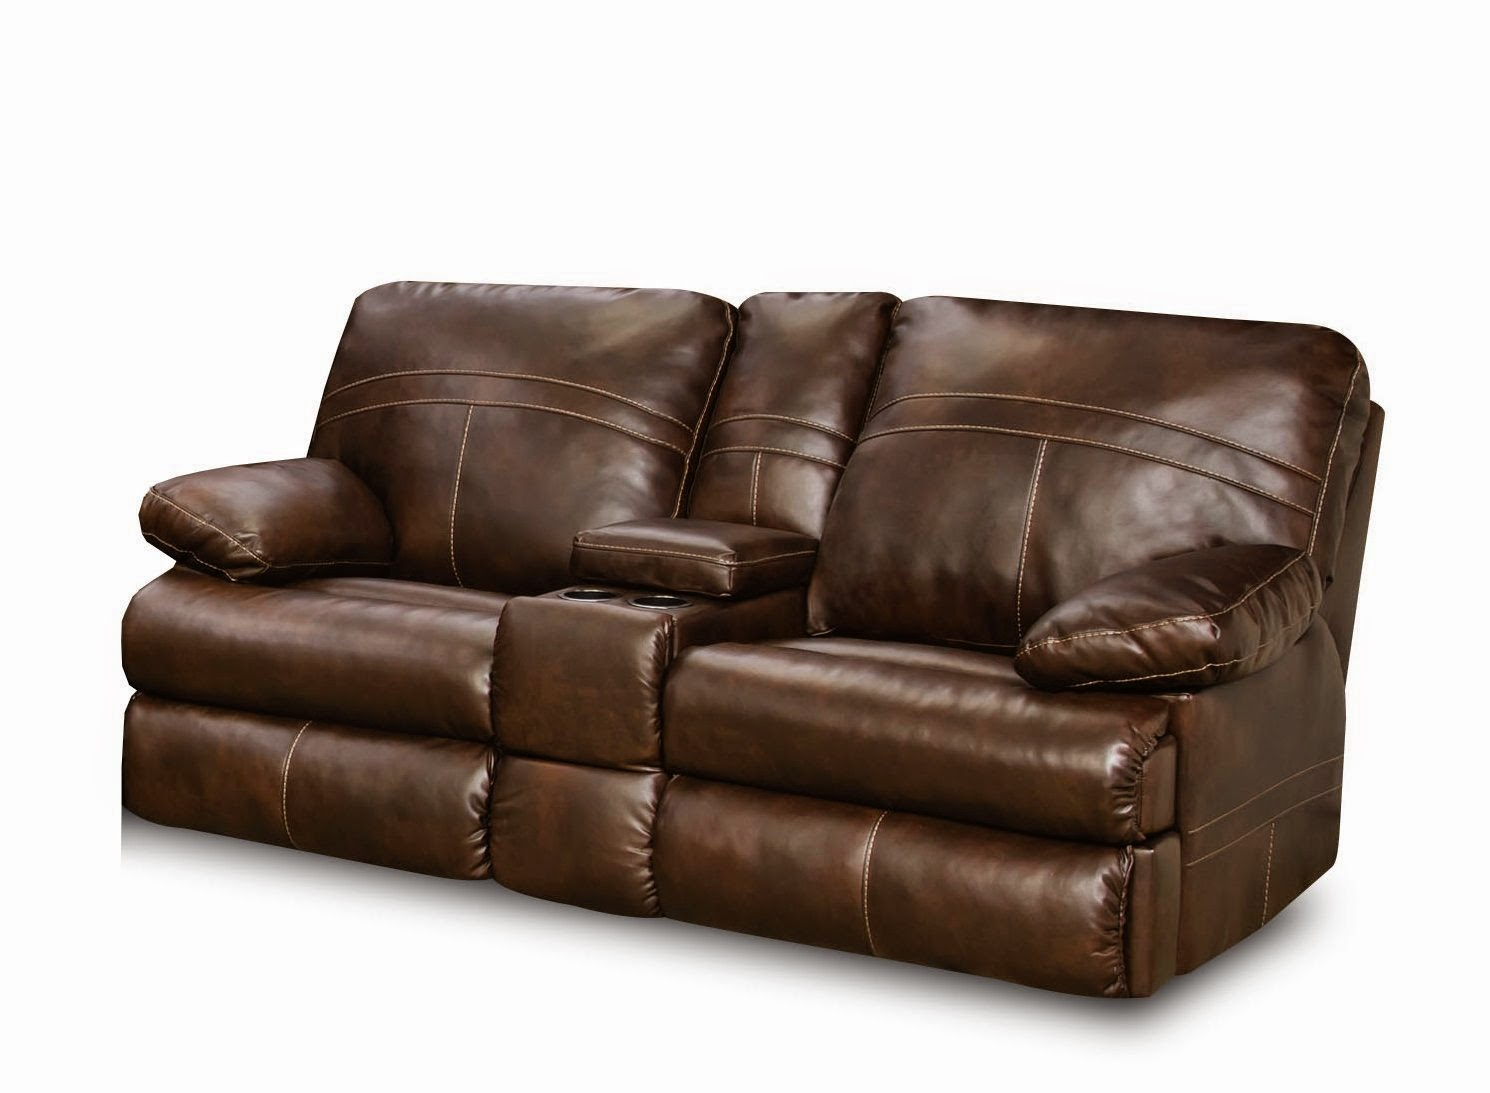 Leather Loveseat The Best Reclining Leather Sofa Reviews Simmons Leather